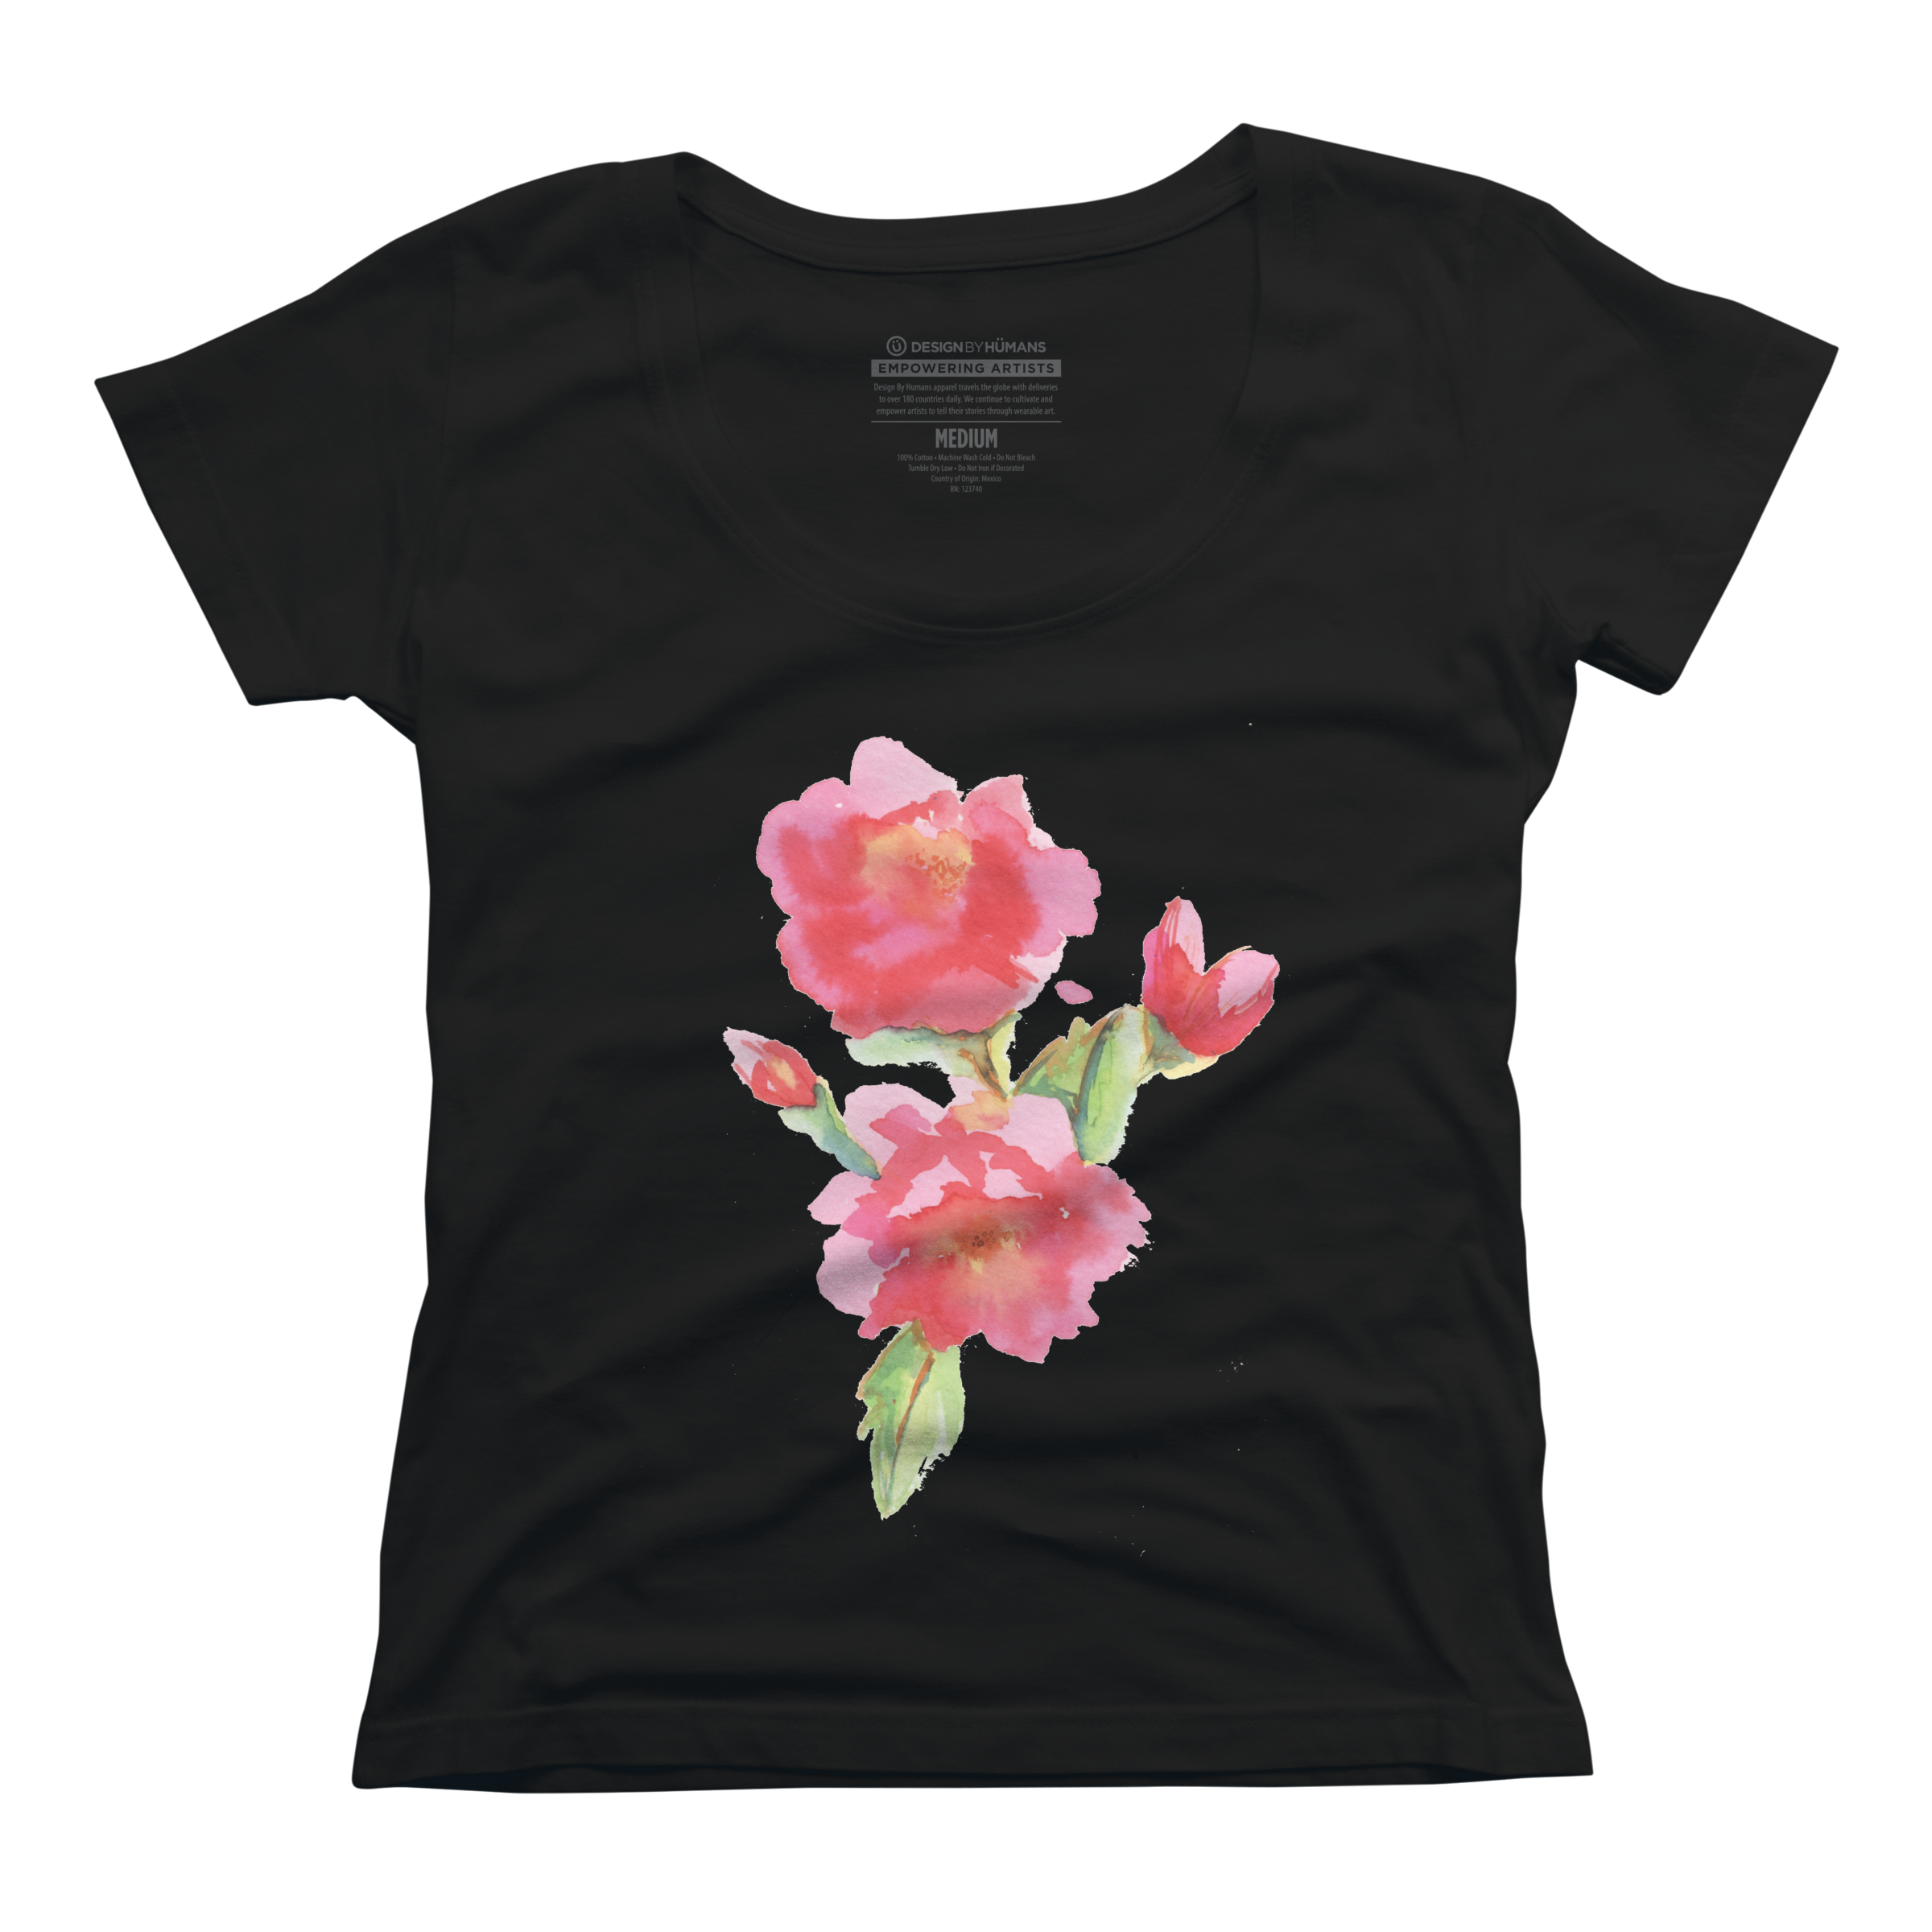 Water Color Roses Womens Scoop Neck T Shirt 585060